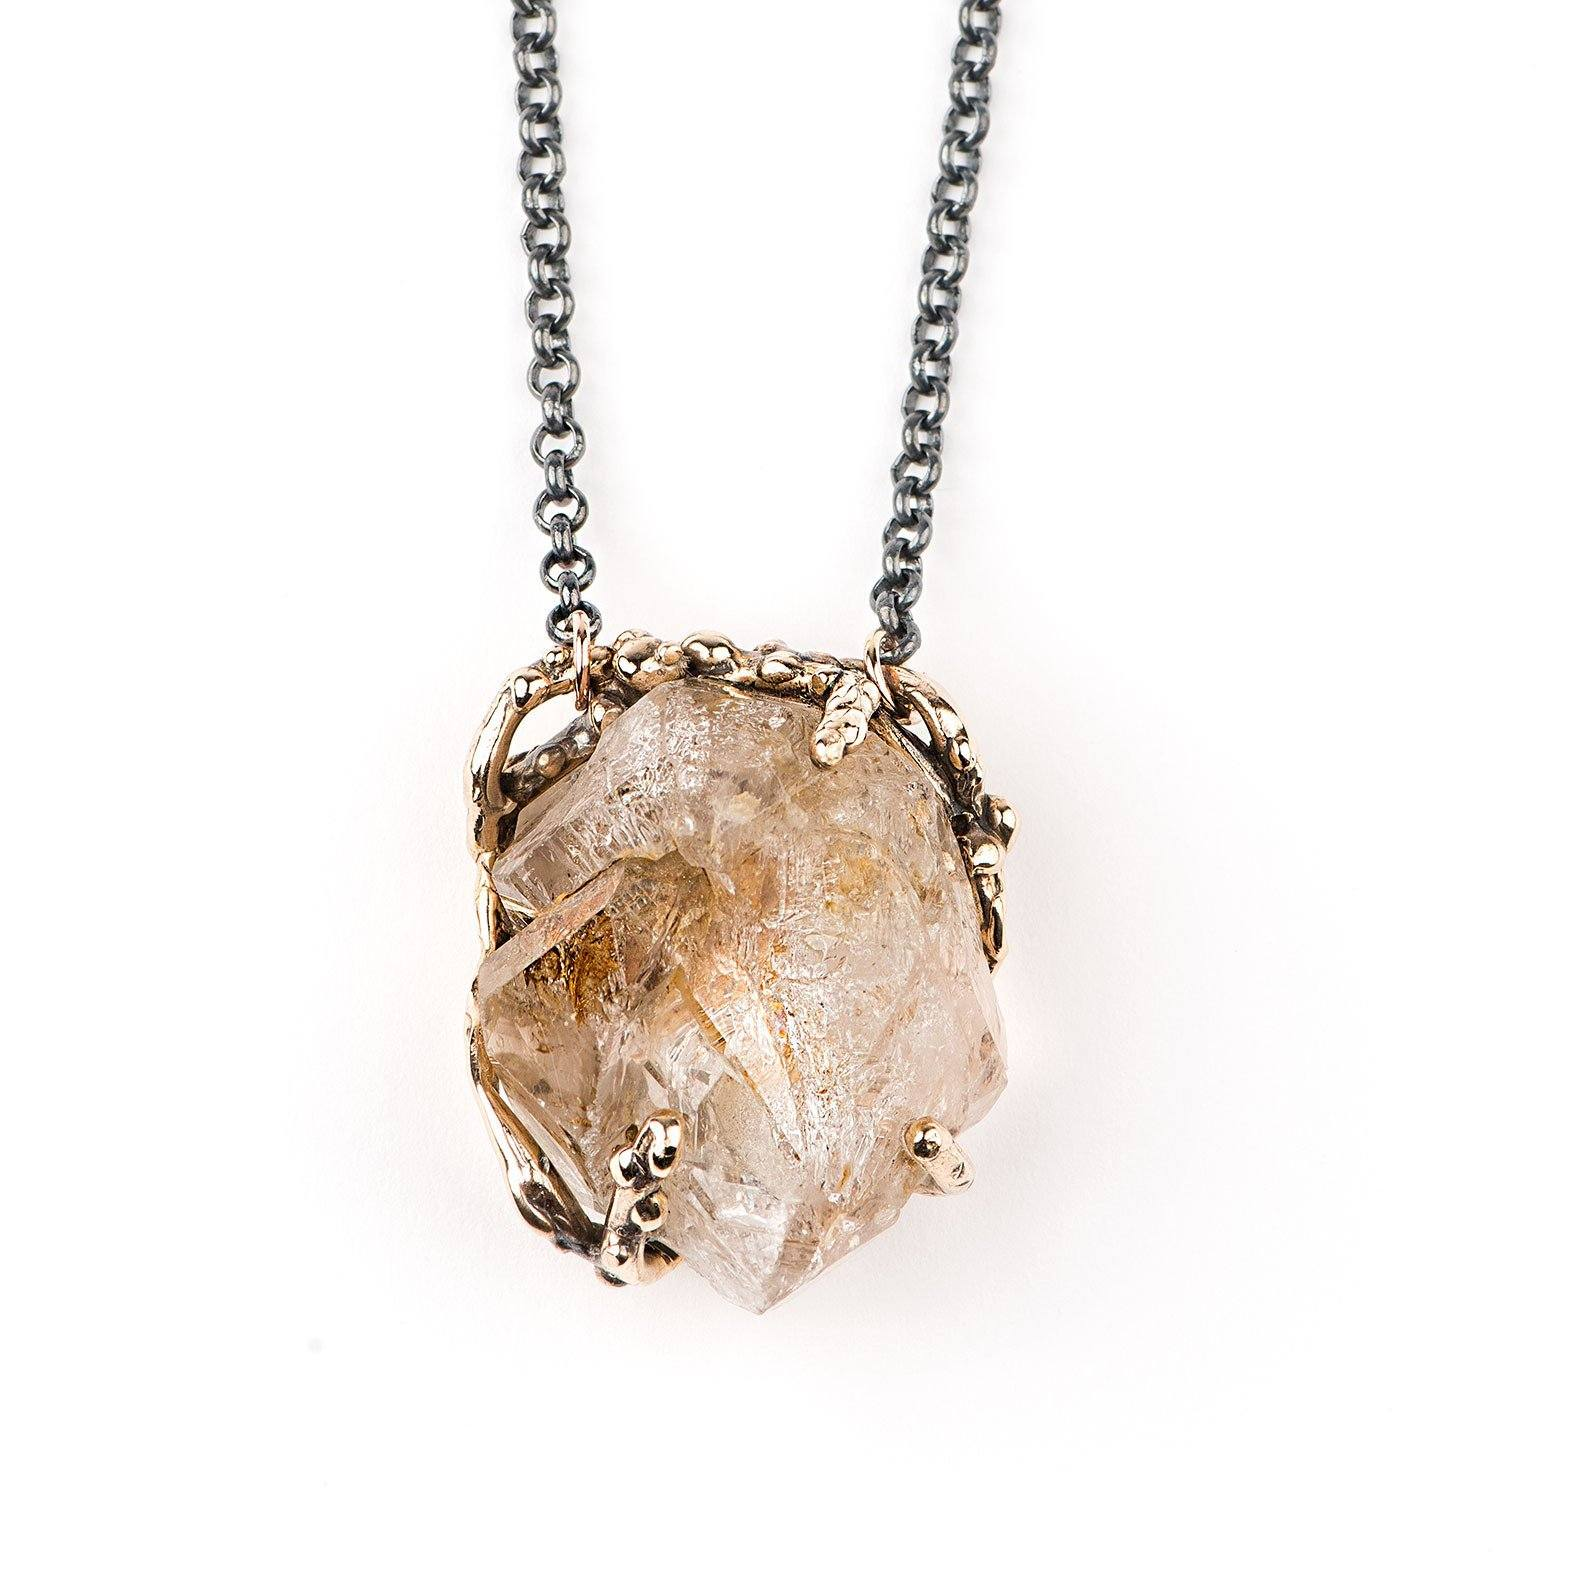 Elestial Quartz Pendant with Chain - Unique Piece for men and women